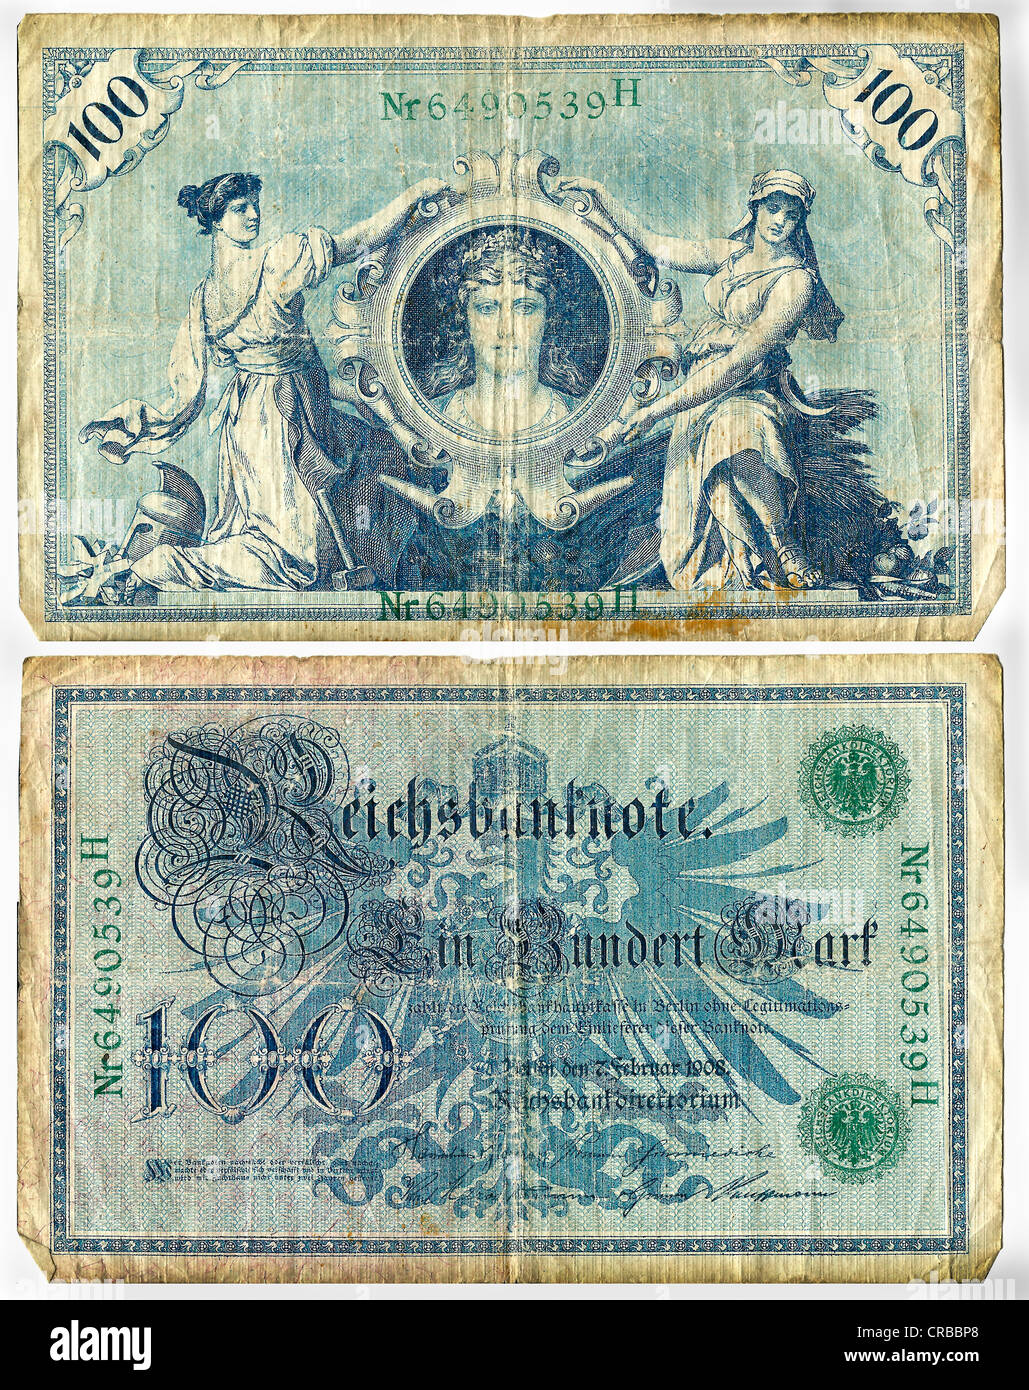 Reichsbanknote, front and rear, 100 Mark, Germany, circa 1908 Stock Photo